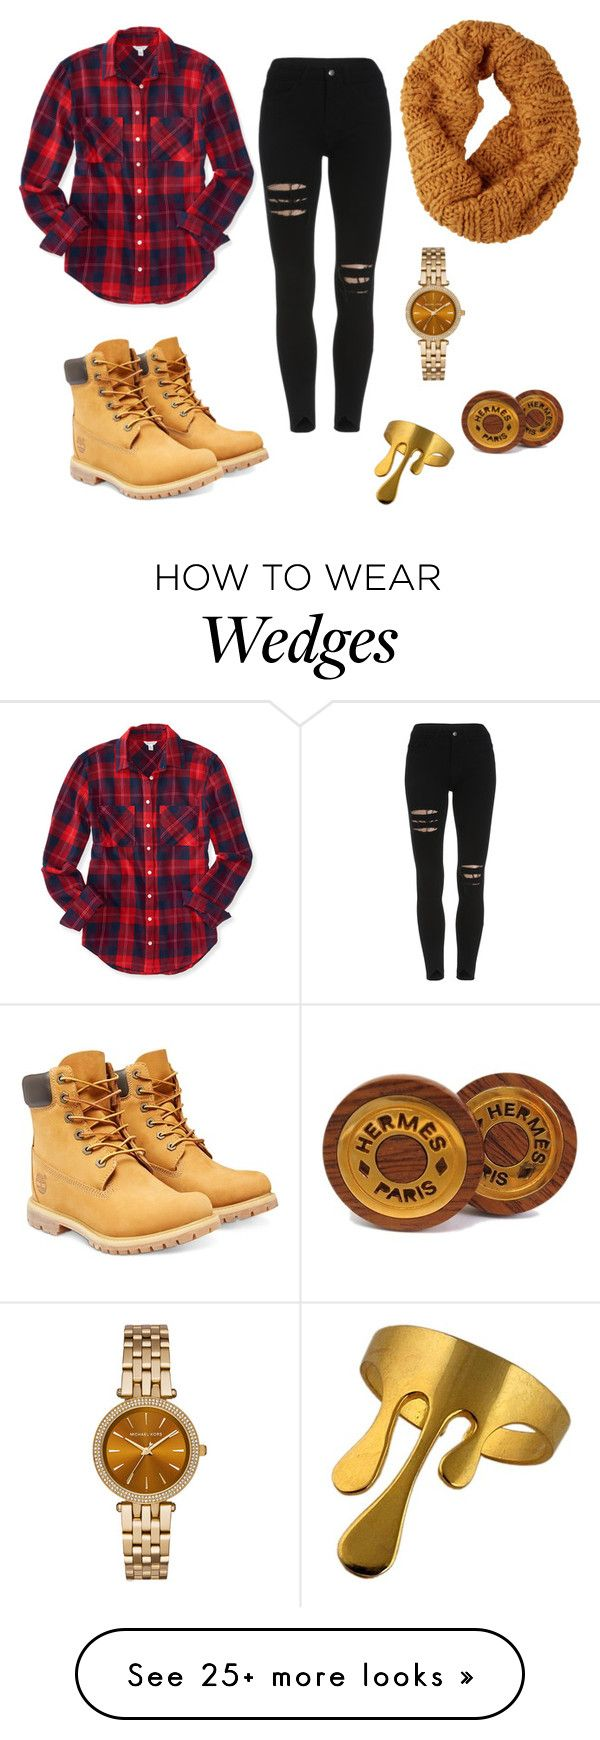 """Untitled #65"" by lexiilexi on Polyvore featuring Aéropostale, Timberland, Burton, Hermès and Michael Kors"